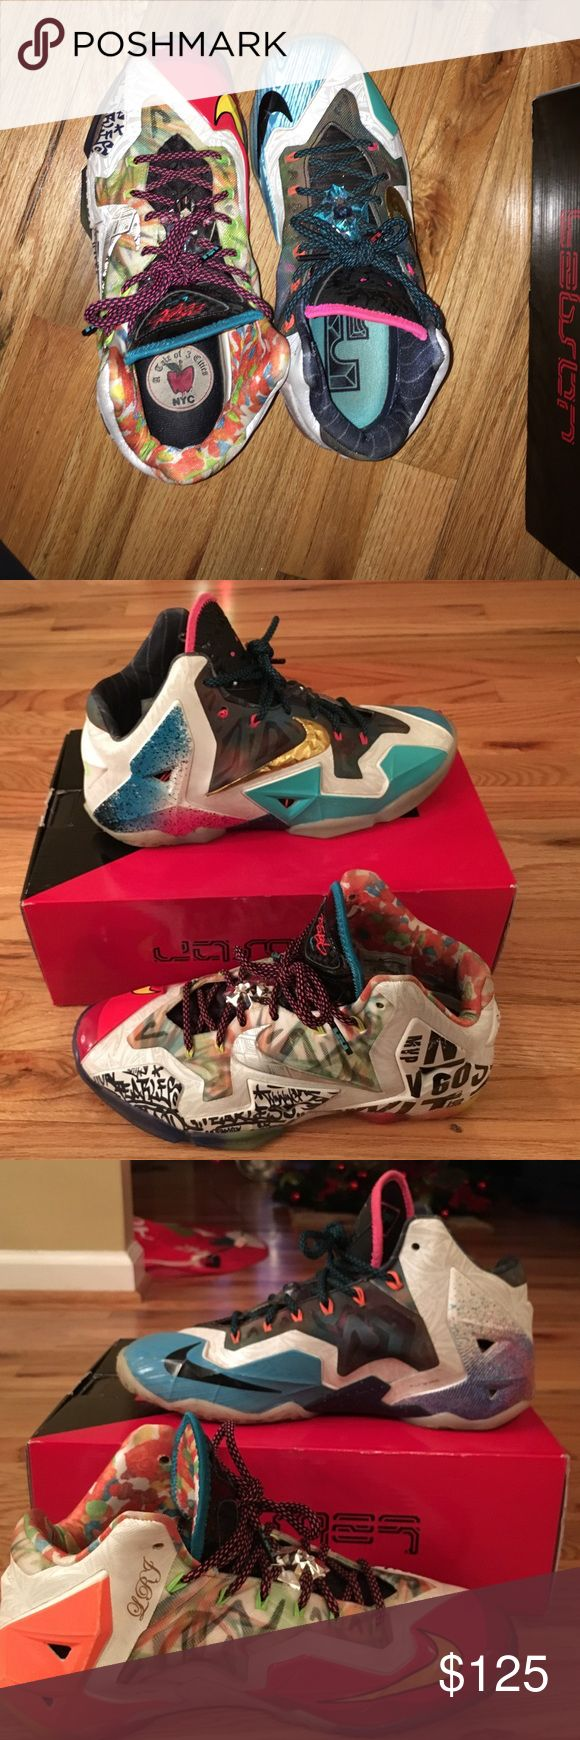 What The Lebron 11 Barely worn What The Lebron 11's, still in good condition. Size 9.5 still with original. Nike Shoes Athletic Shoes